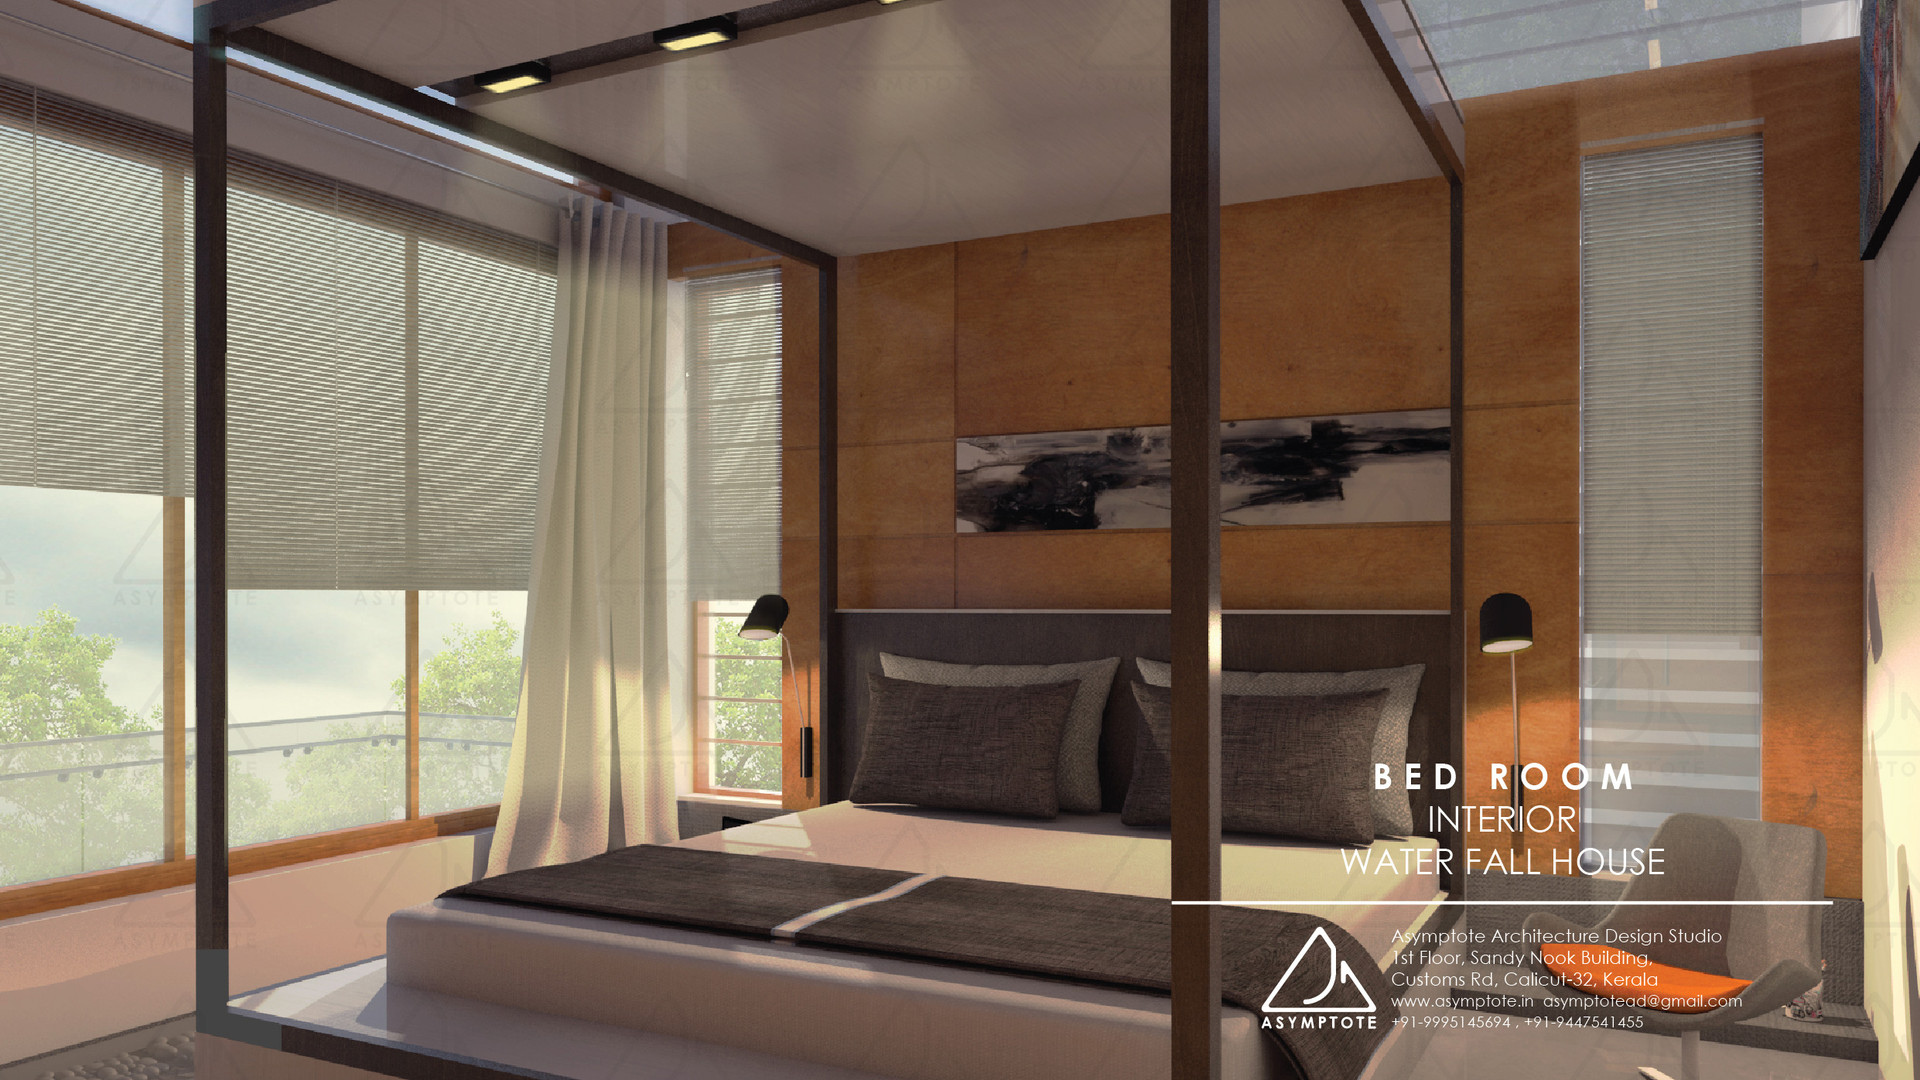 BED ROOM INTERIOR AND OTHER SPACE-10.jpg